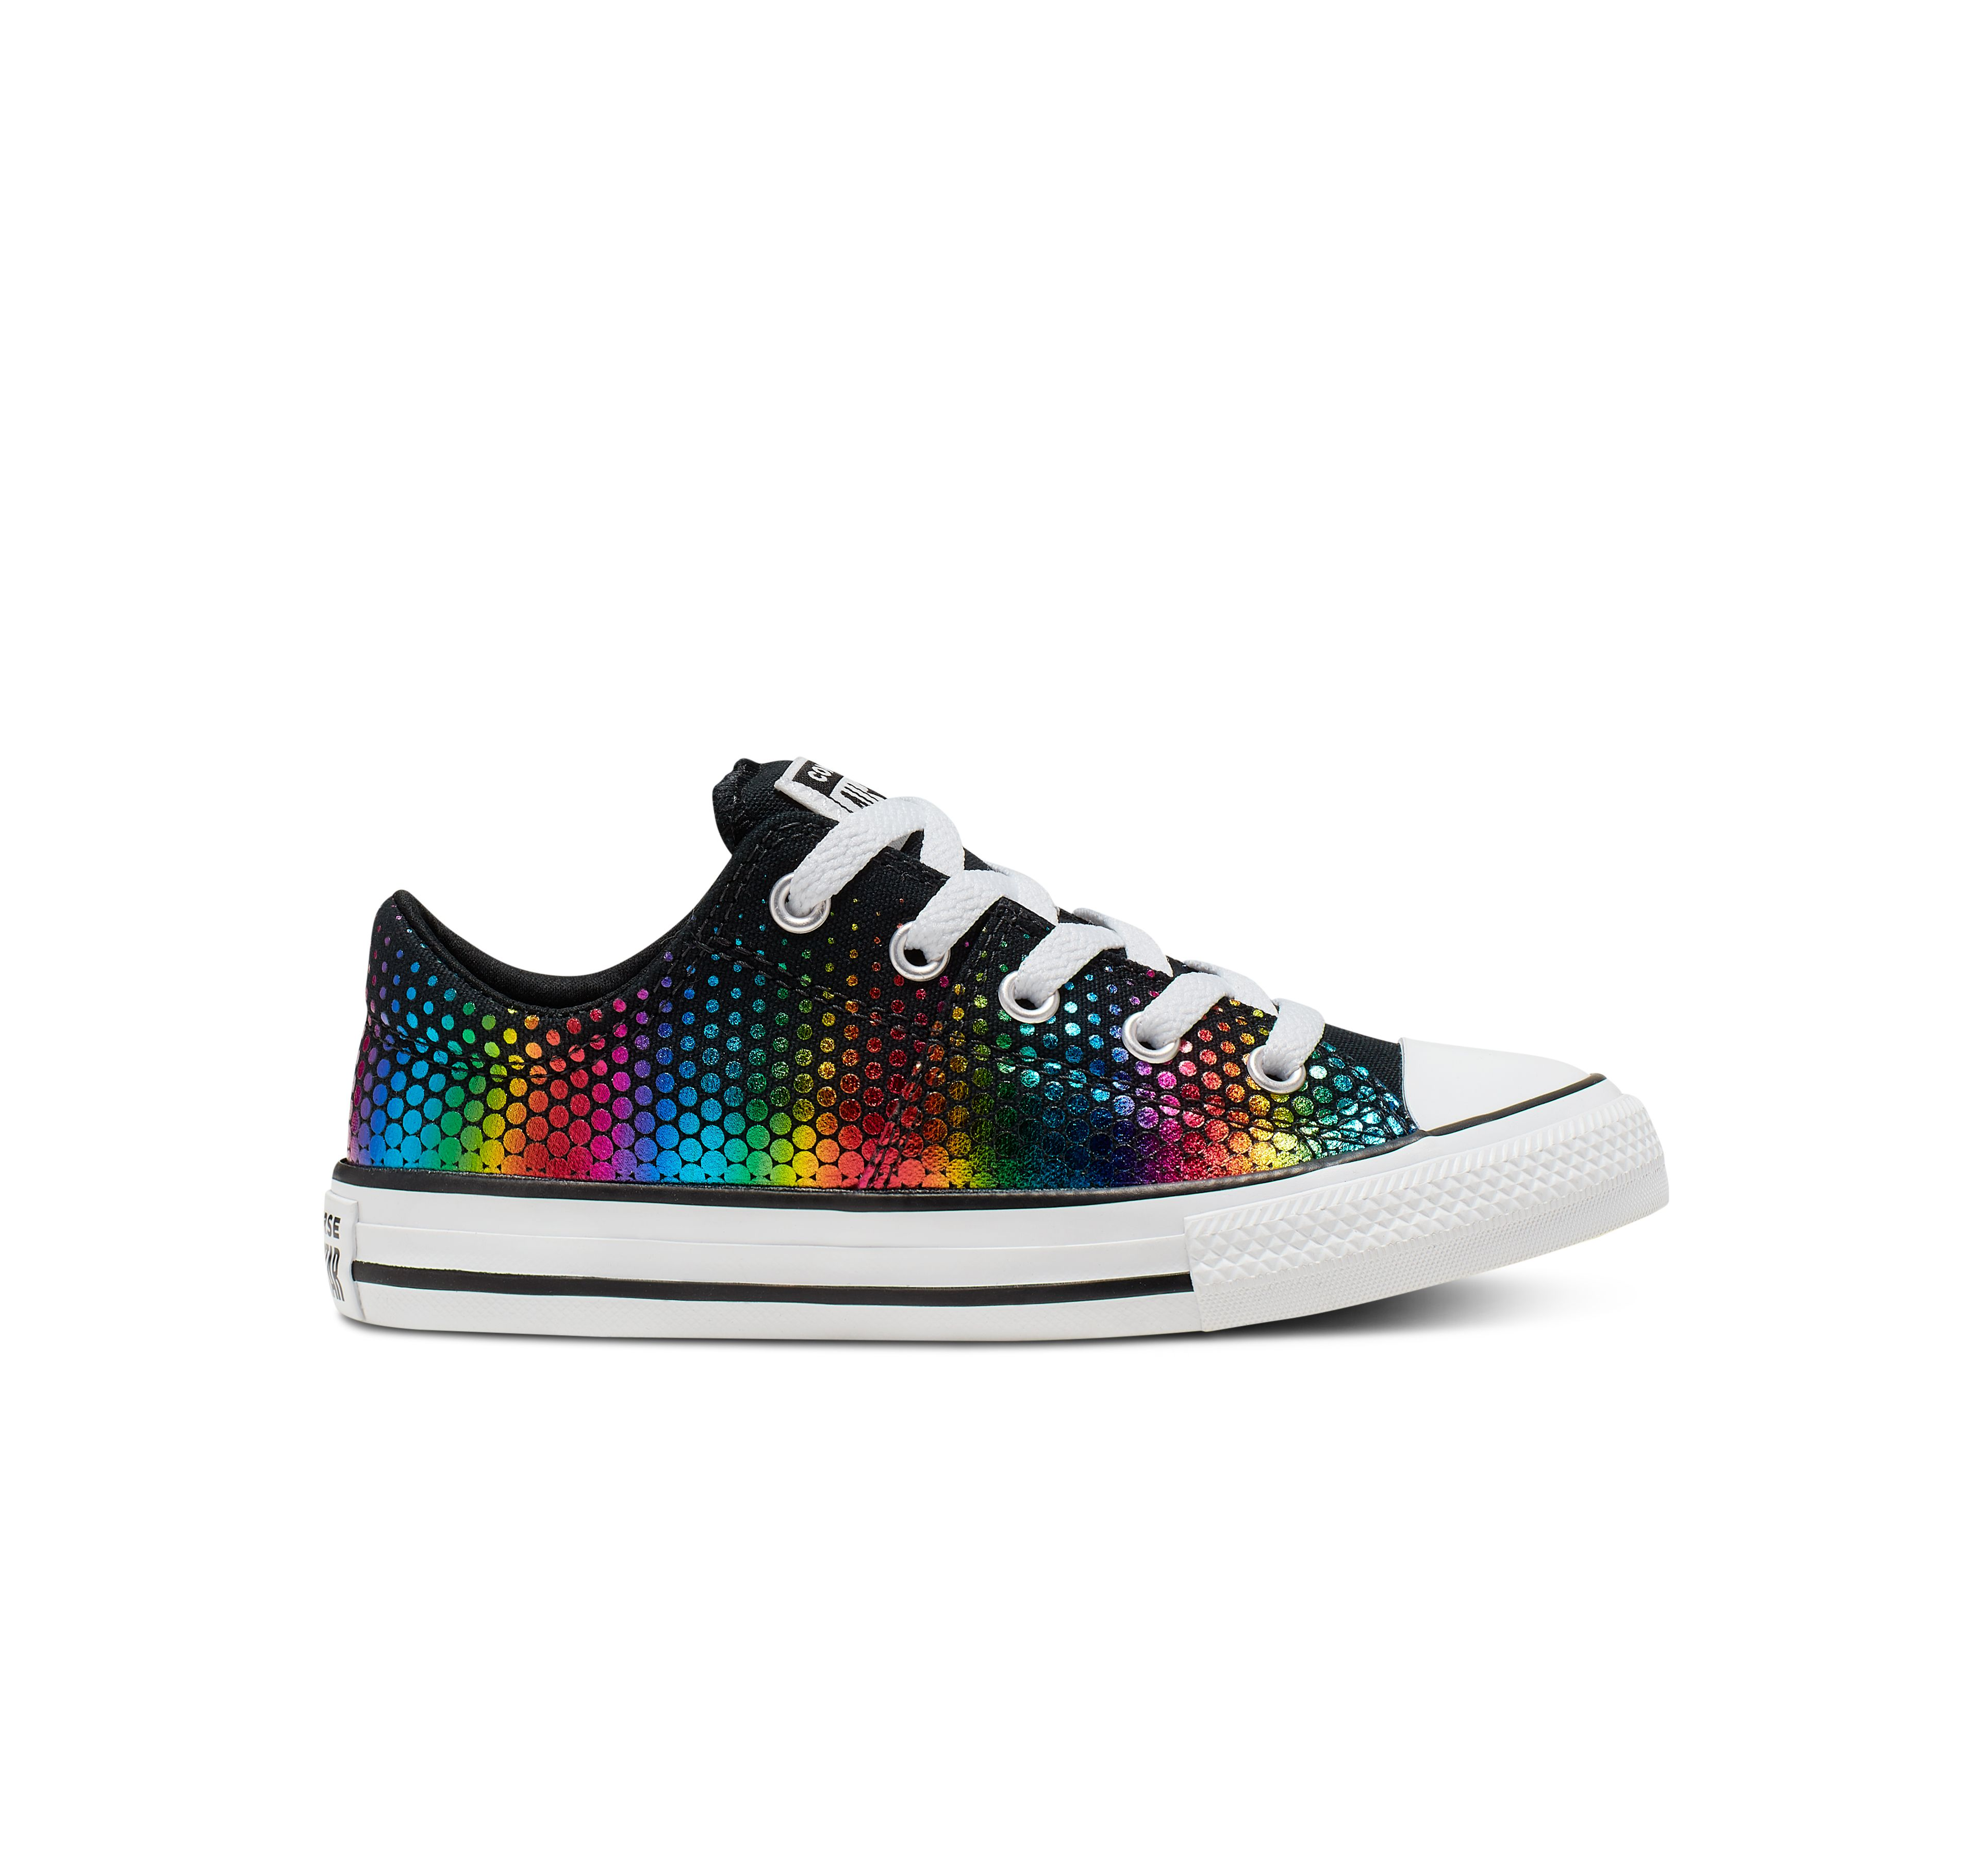 Converse Chuck Taylor All Star Madison Low top Sneakers in